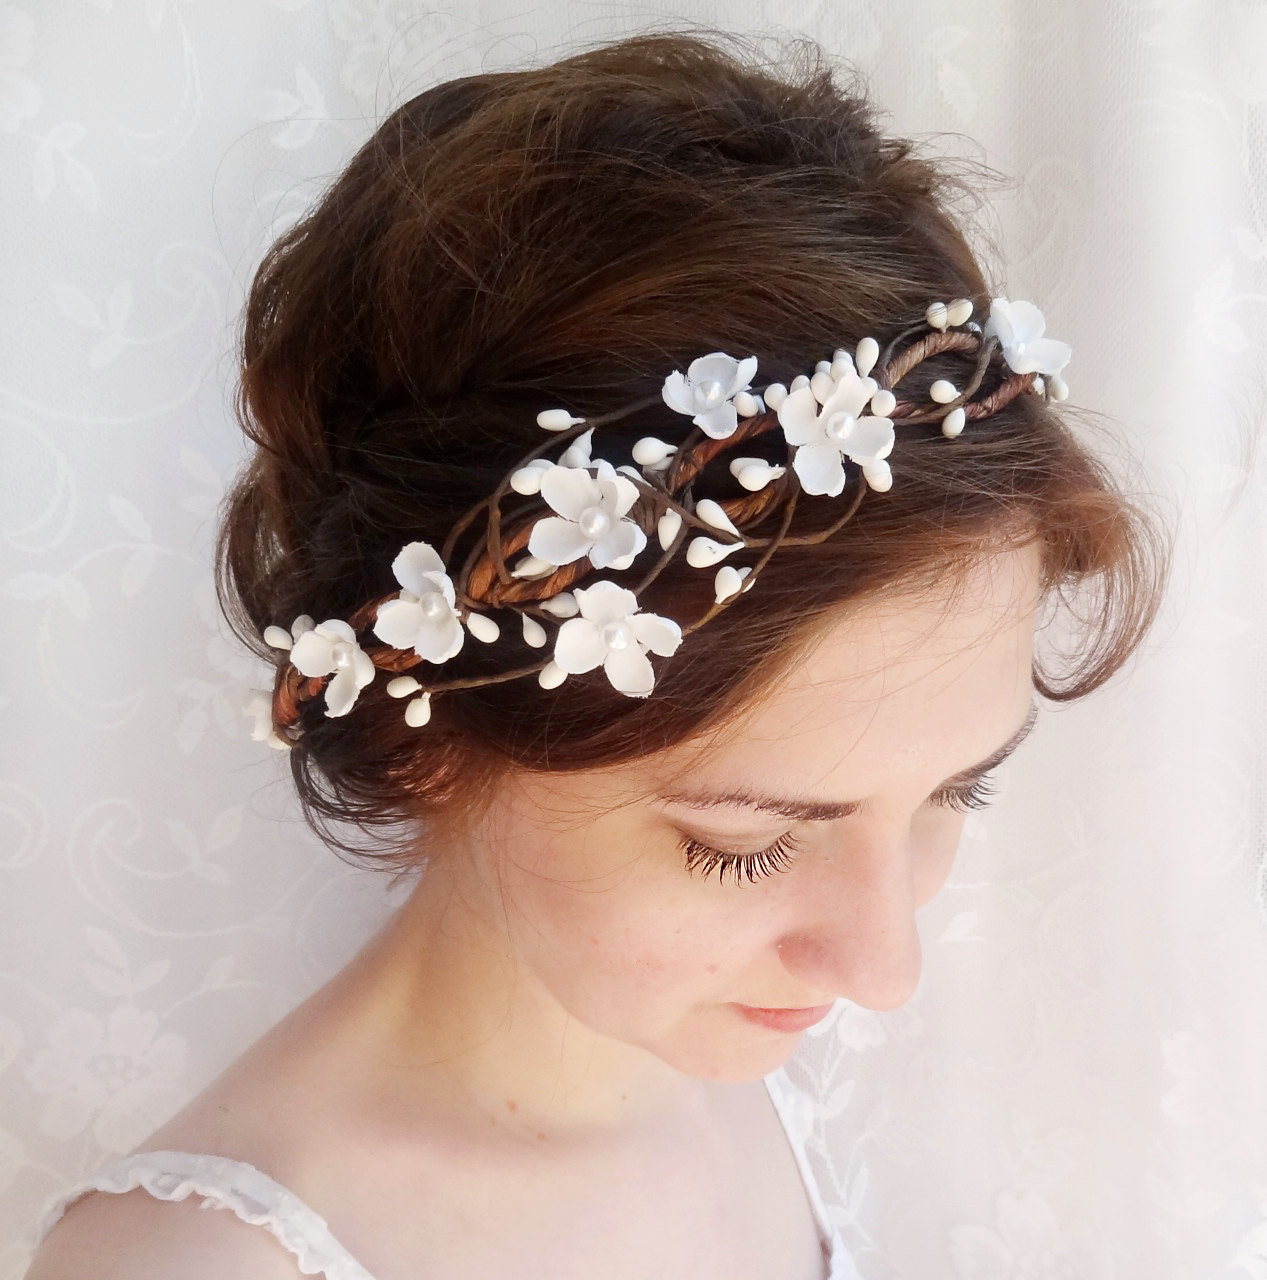 Bridal Hair Accessories Wedding Flower Headpiece White Flower Crown